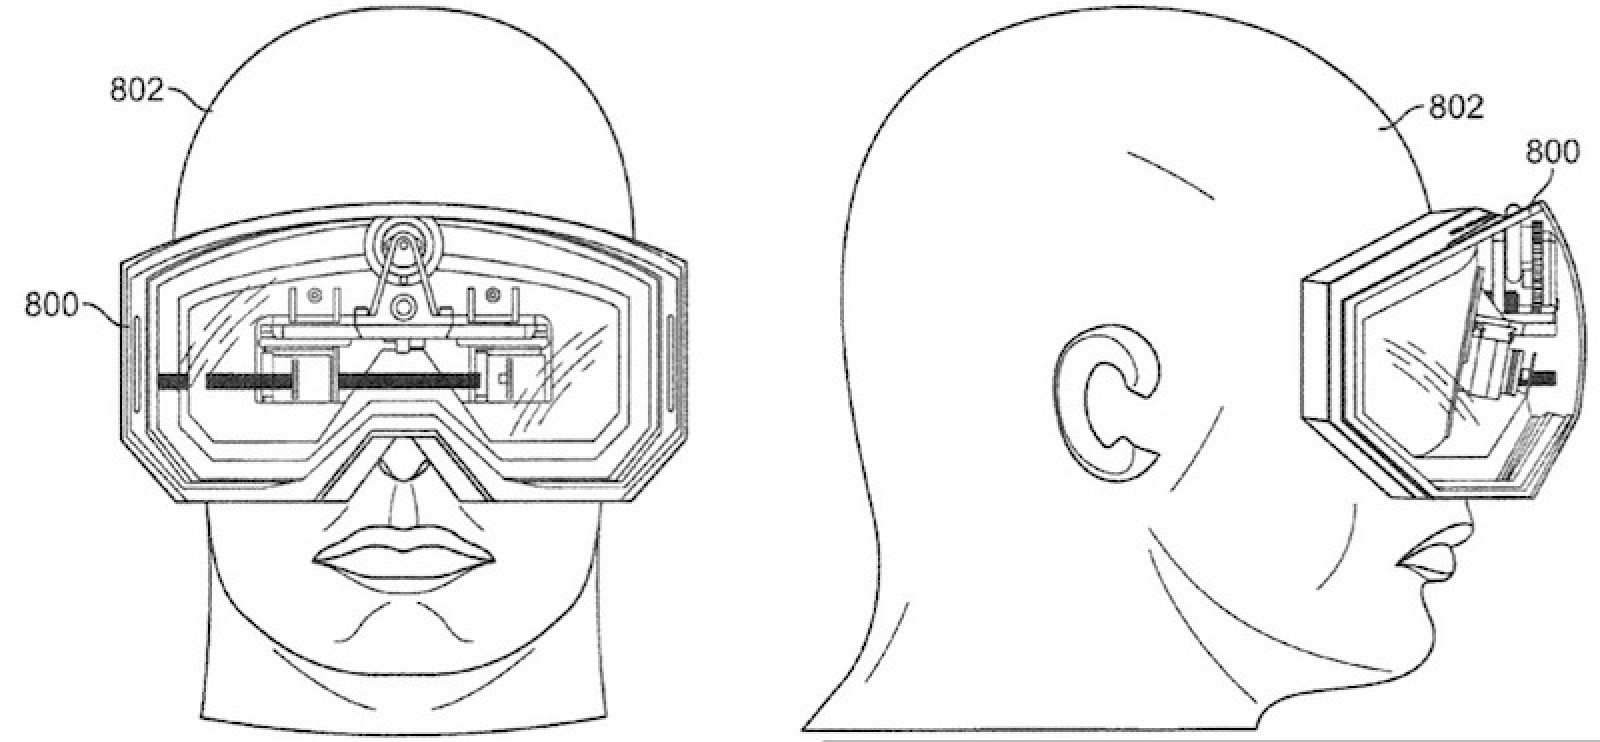 Apple Has Secret Team Working on Virtual Reality Headset